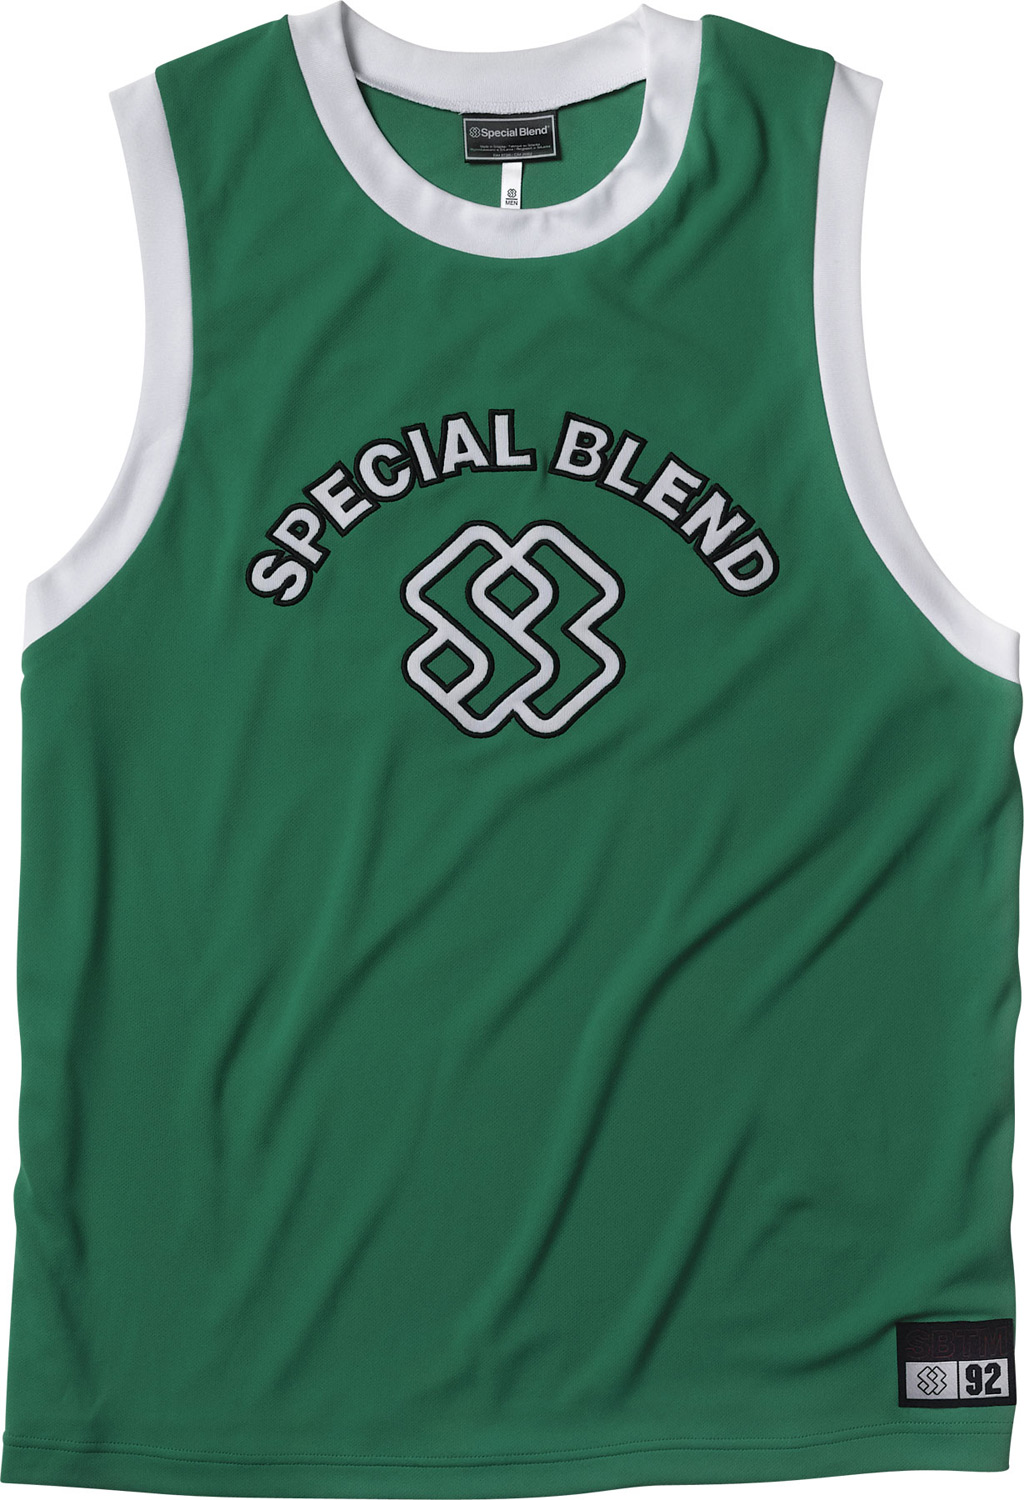 Surf Special Blend Frank The Tank Tank Top Chronic - $14.95